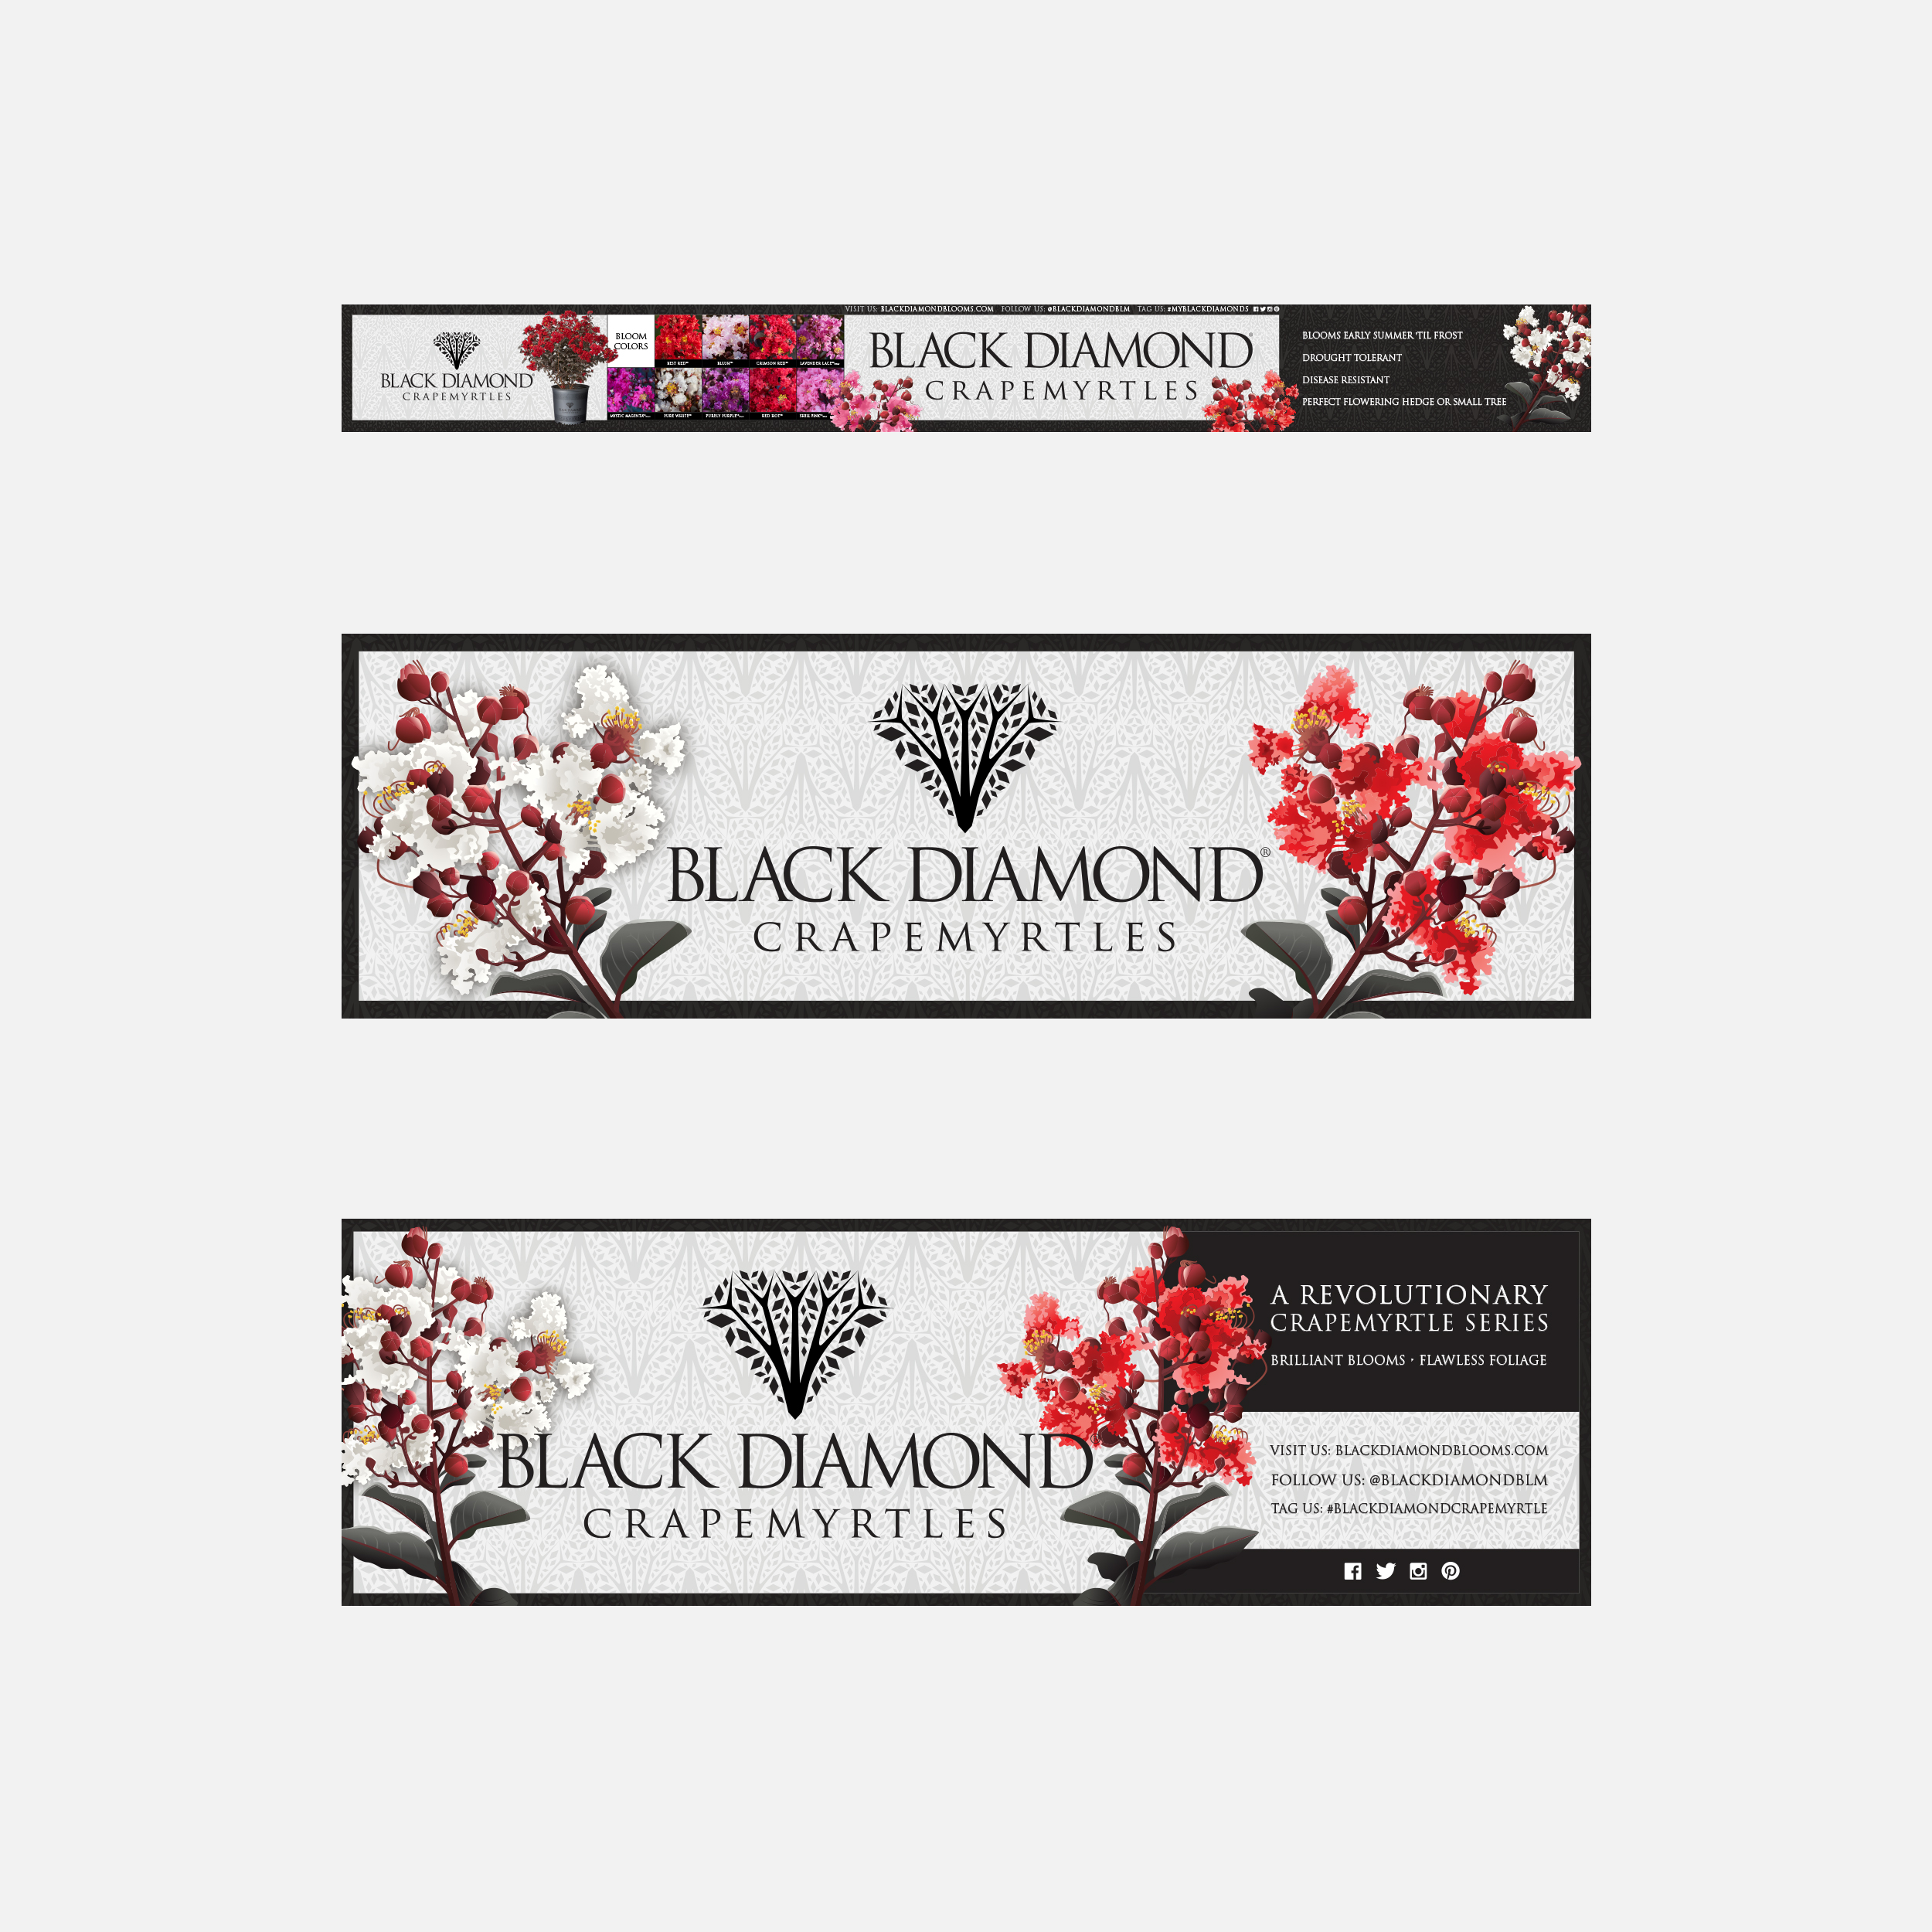 Black Diamond Crapemyrtles banners